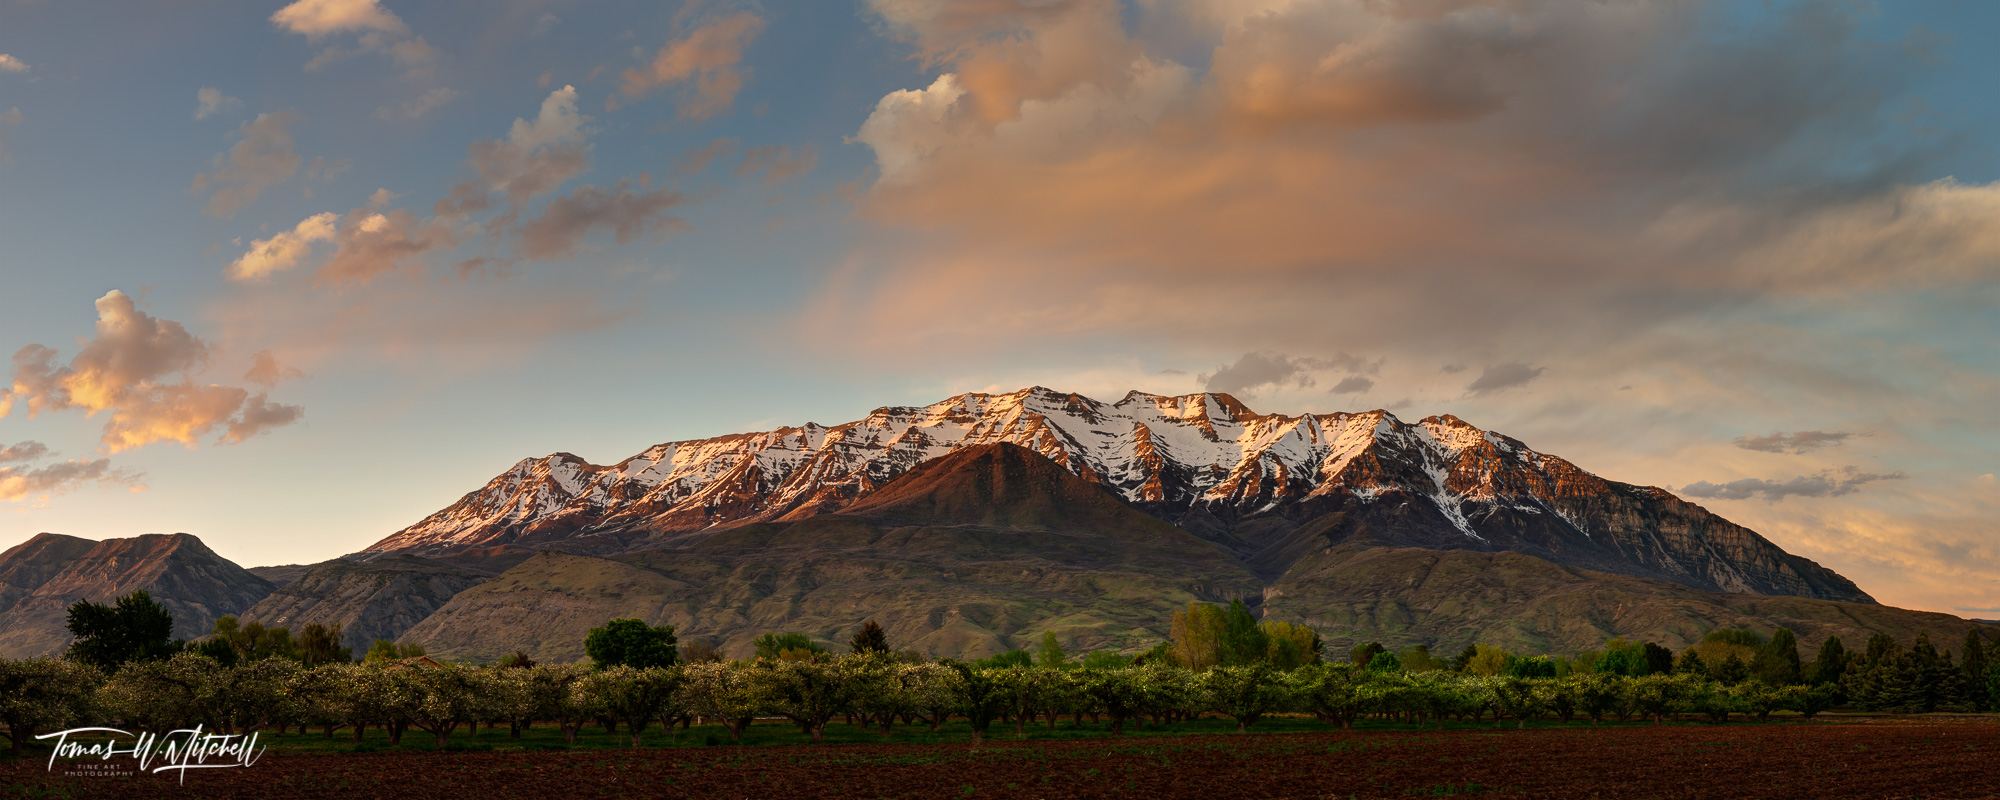 limited edition, fine art, prints, timpanogos, utah, mountain, springtime, timp, orchard, photograph, panoramic, photo